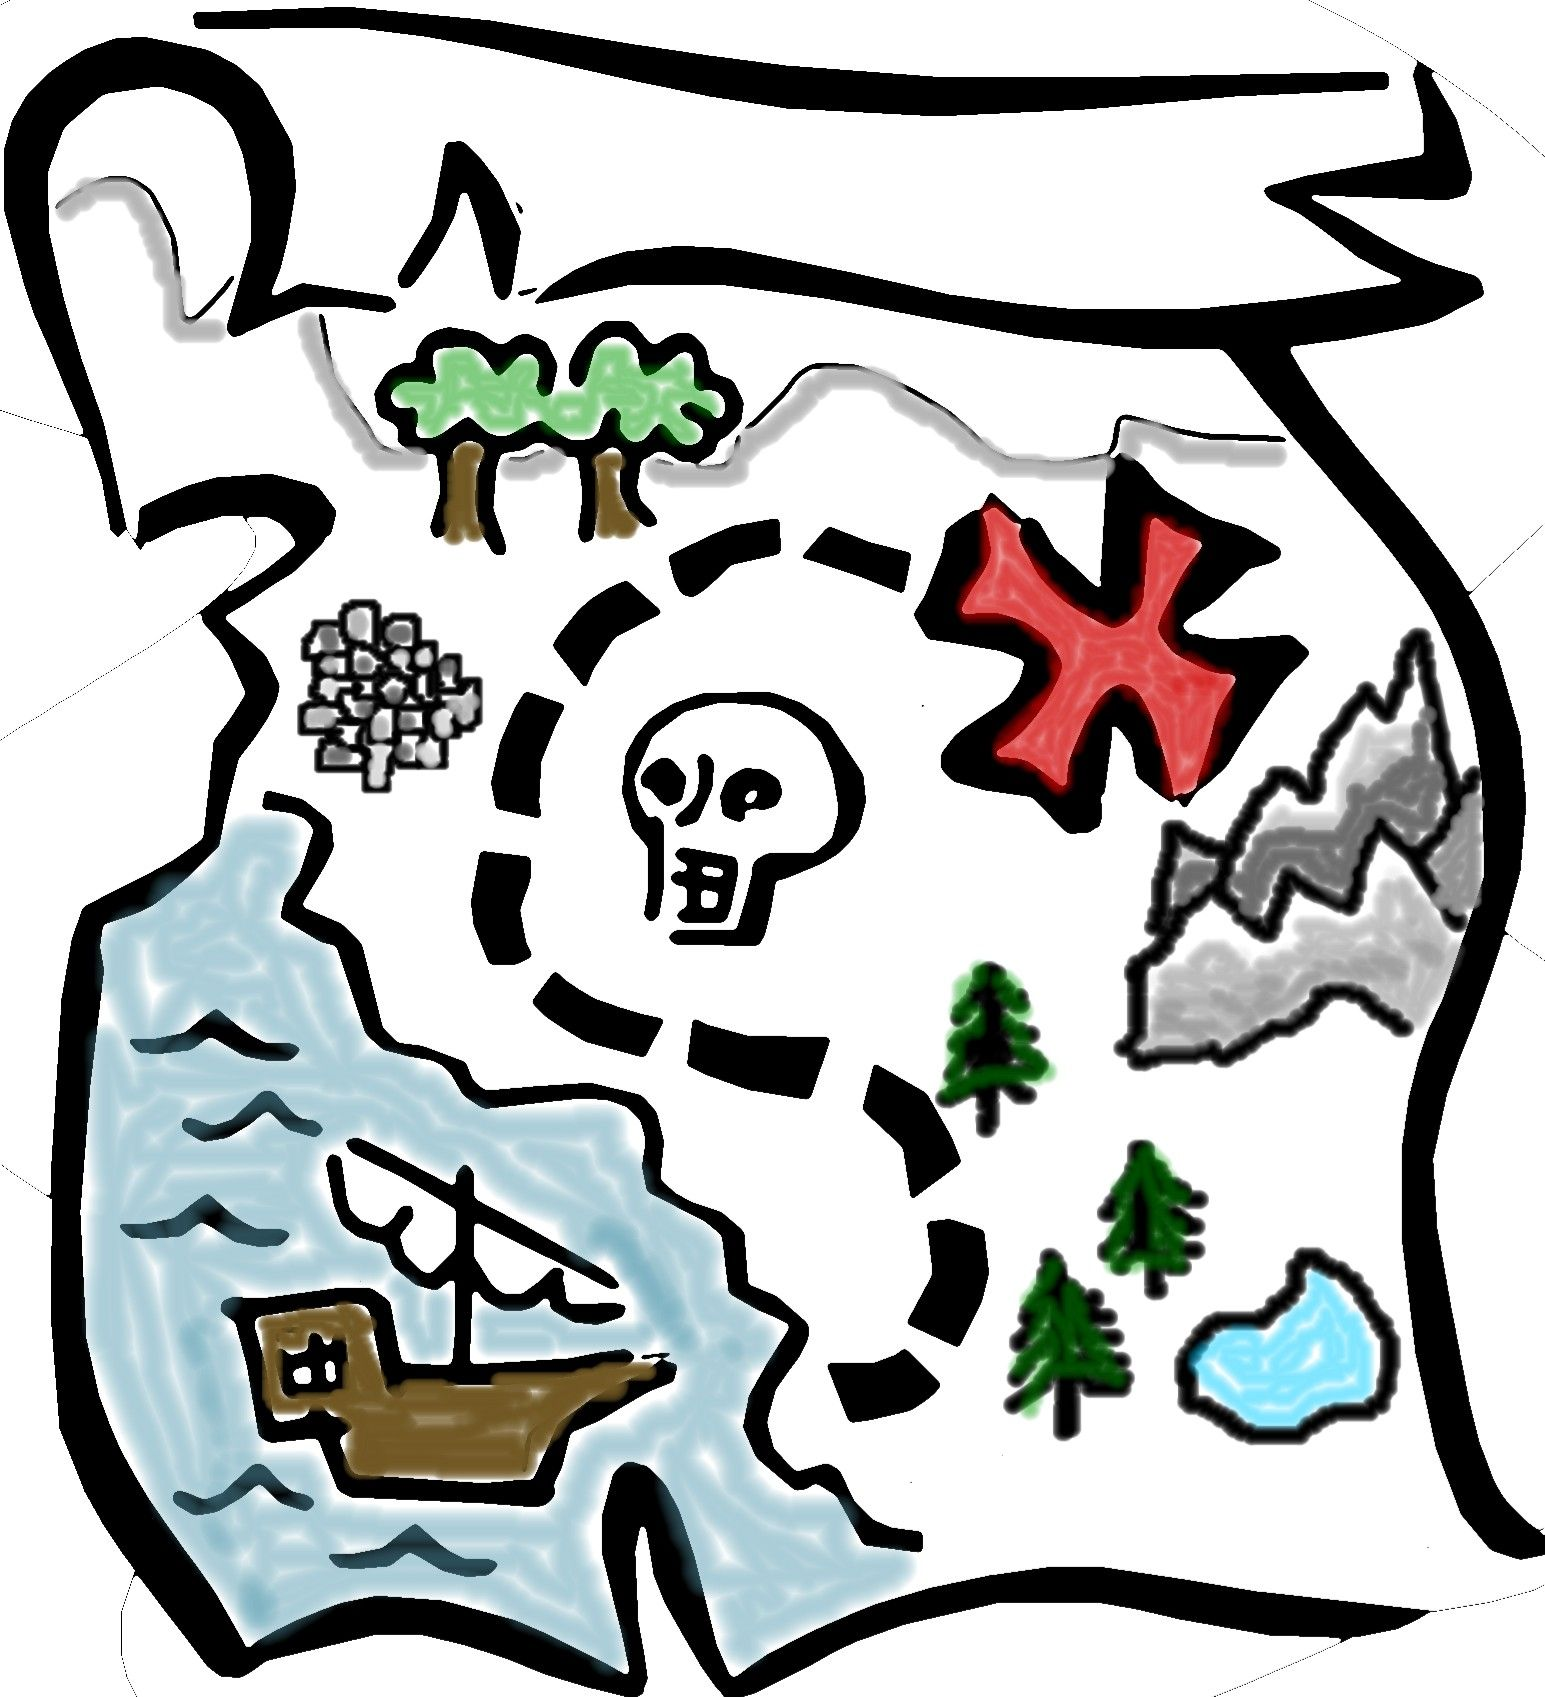 Treasure clipart treasure map. Maps incep imagine ex